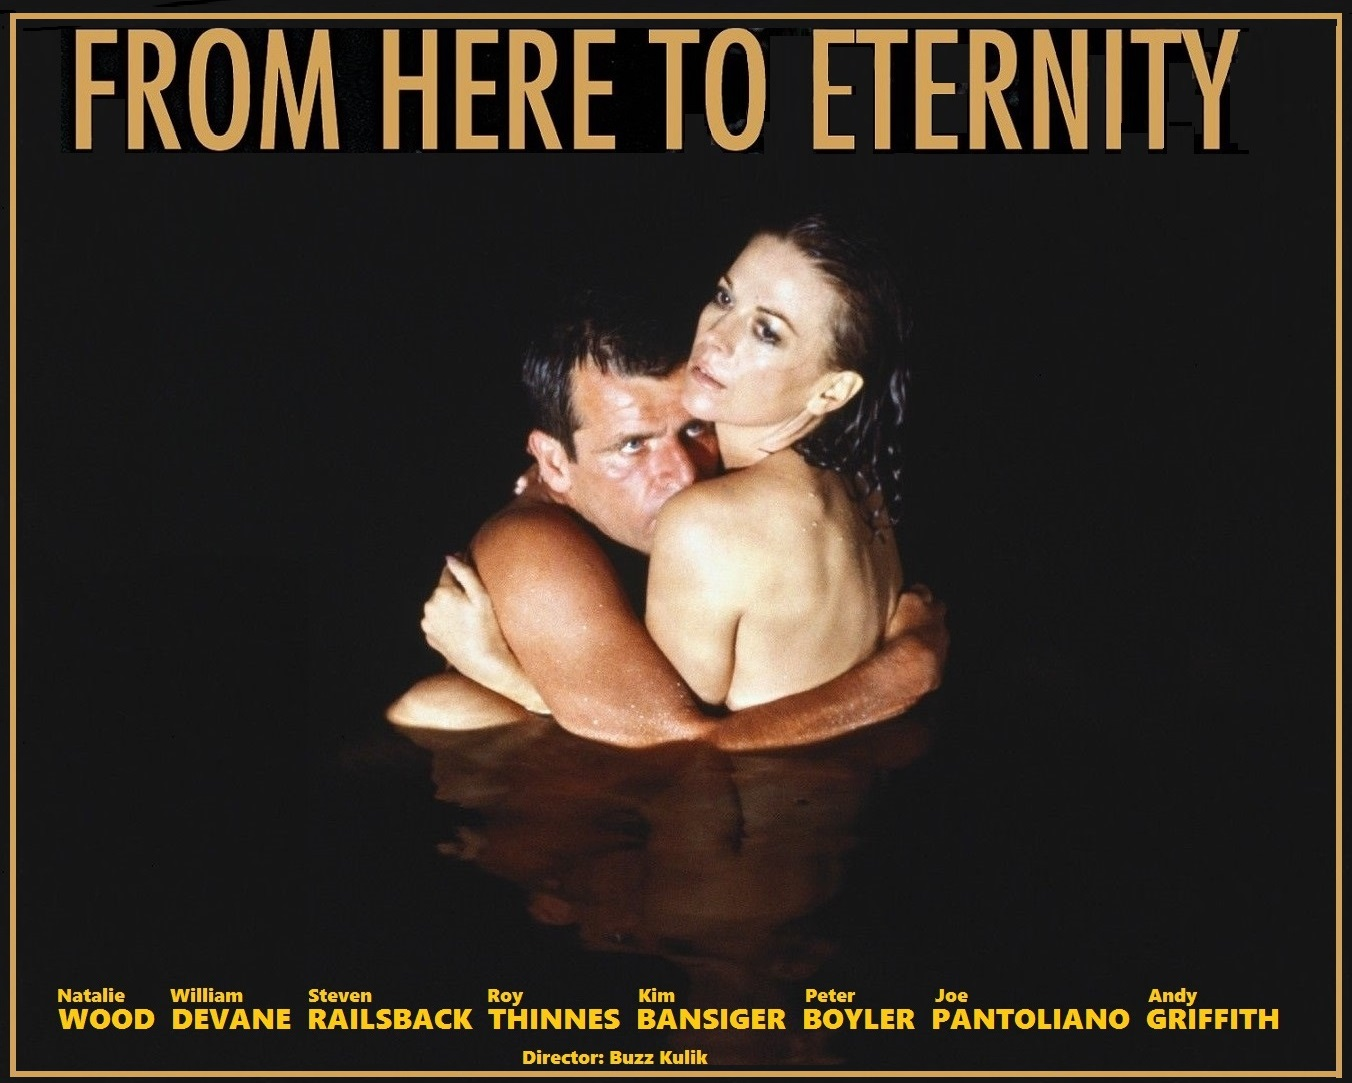 FROM HERE TO ETERNITY (1979) WEB SITE